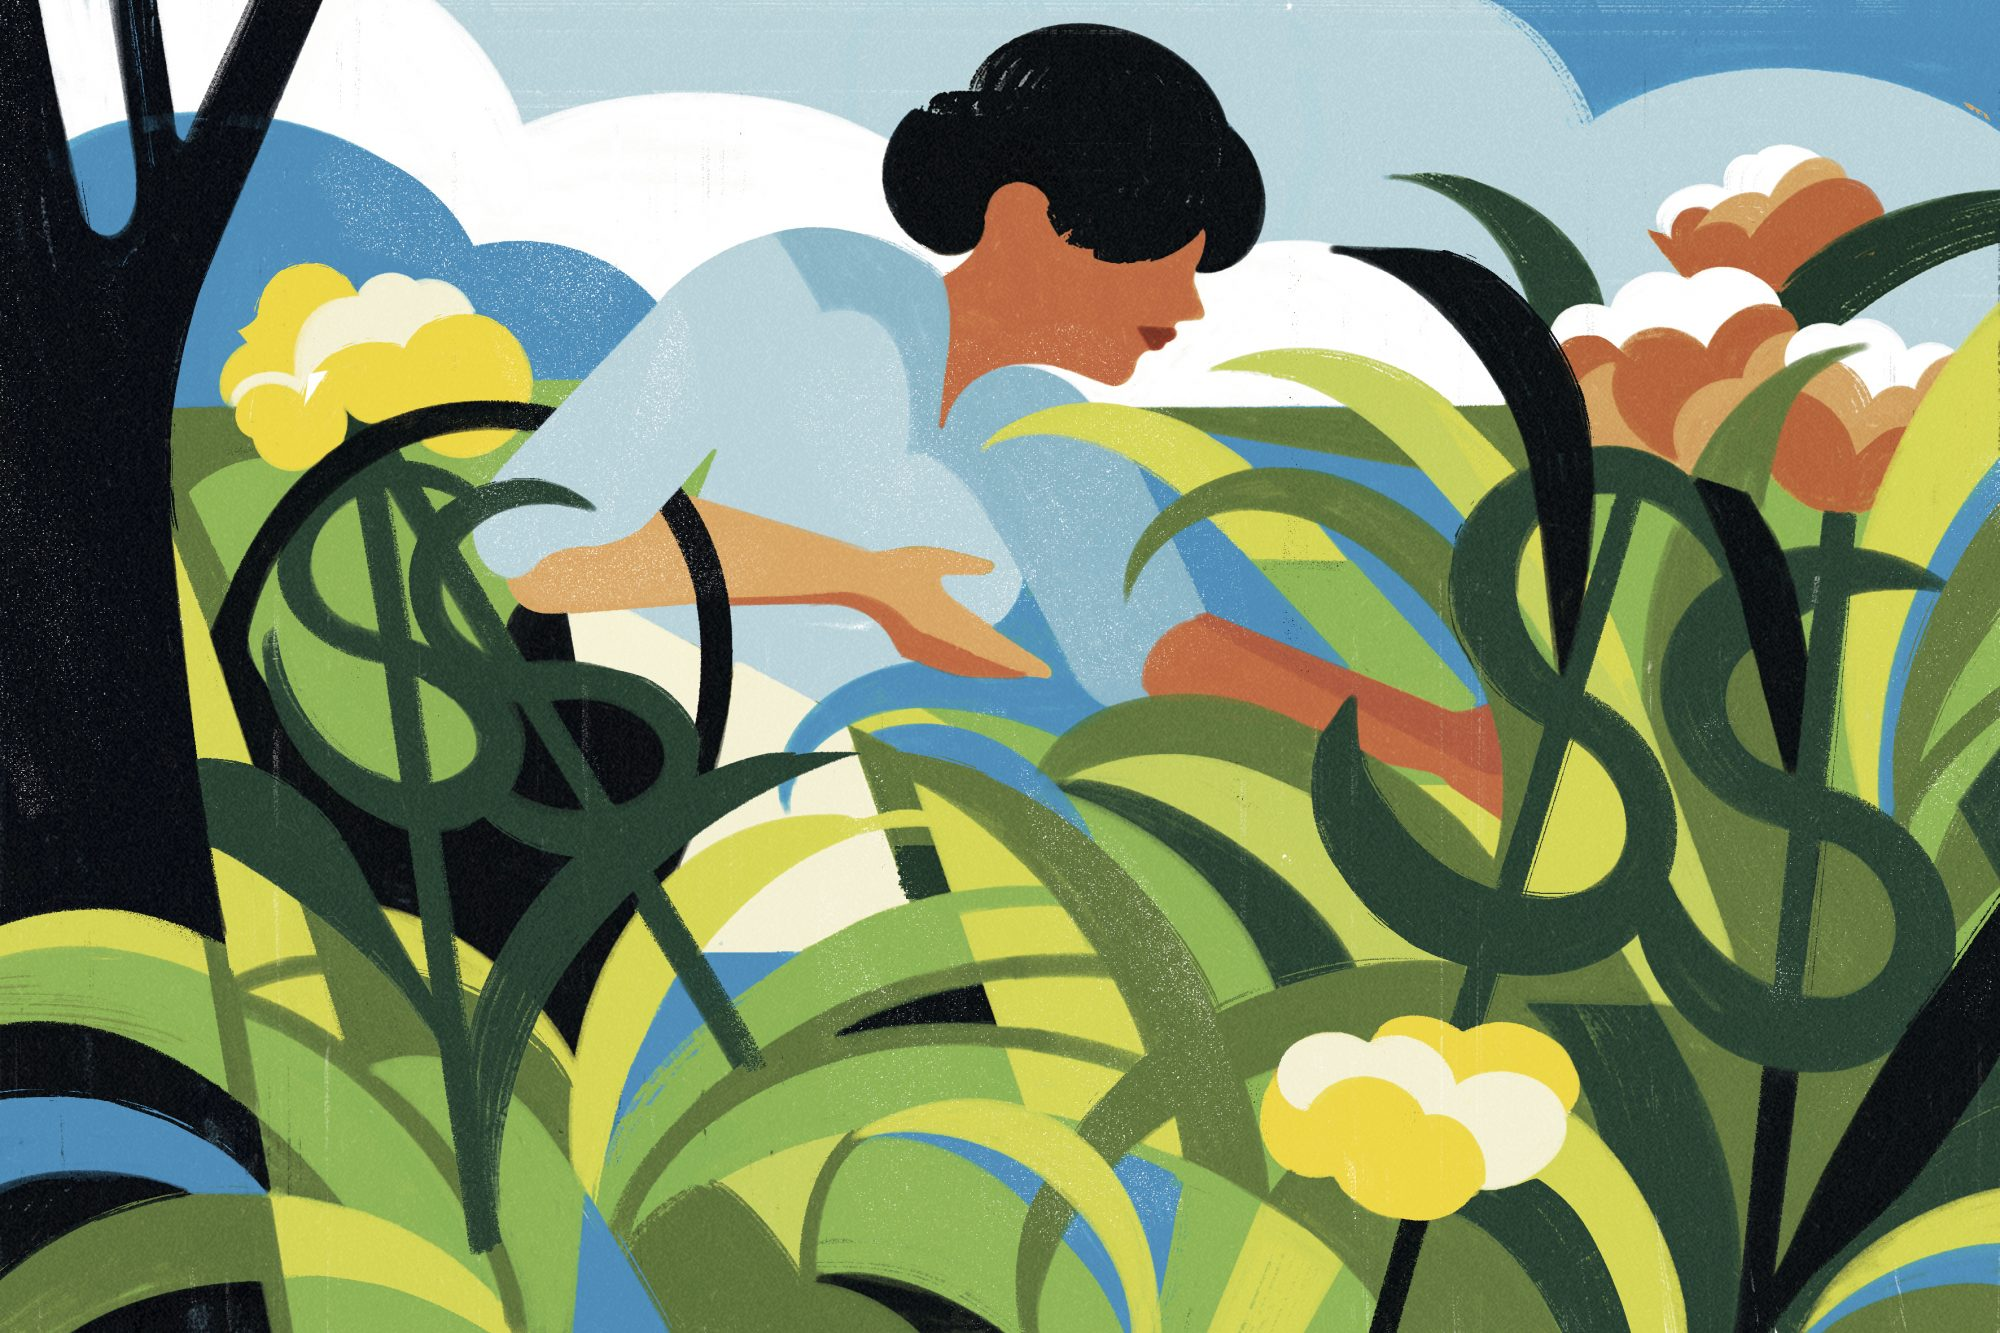 Illustration of woman tending to garden